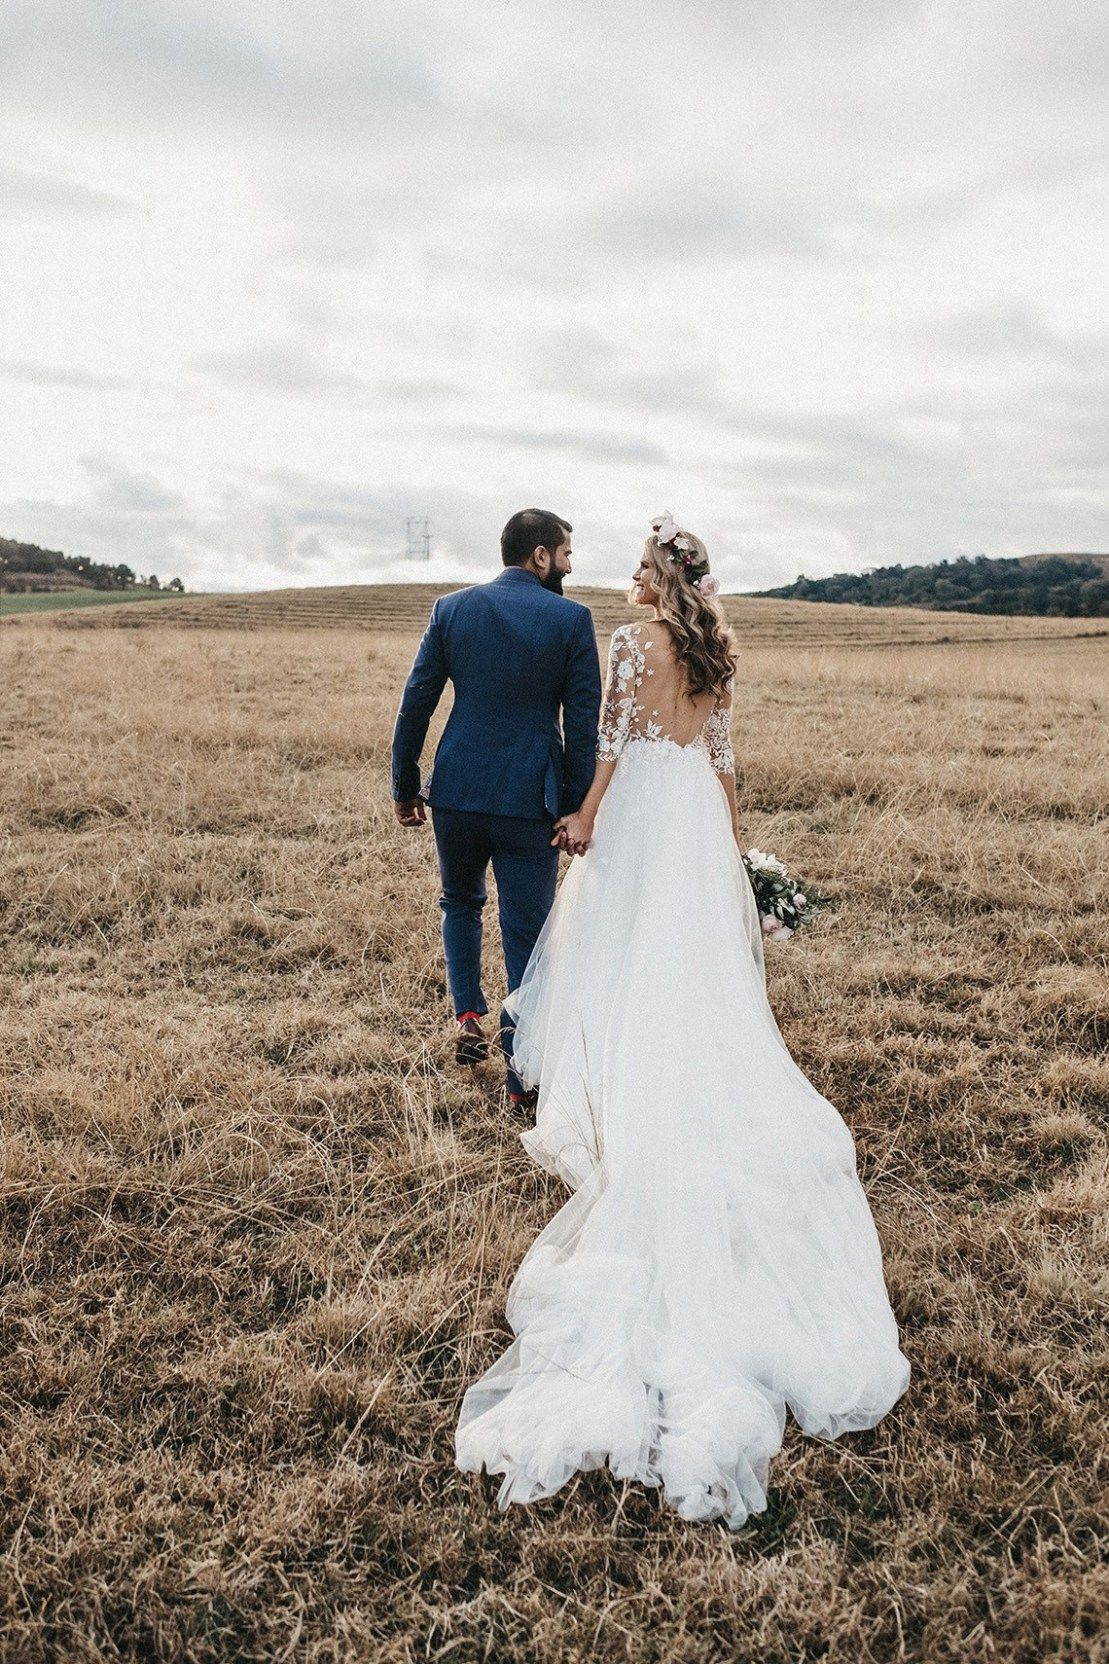 A Stunning South African Winter Wedding With Princess Bride Vibes